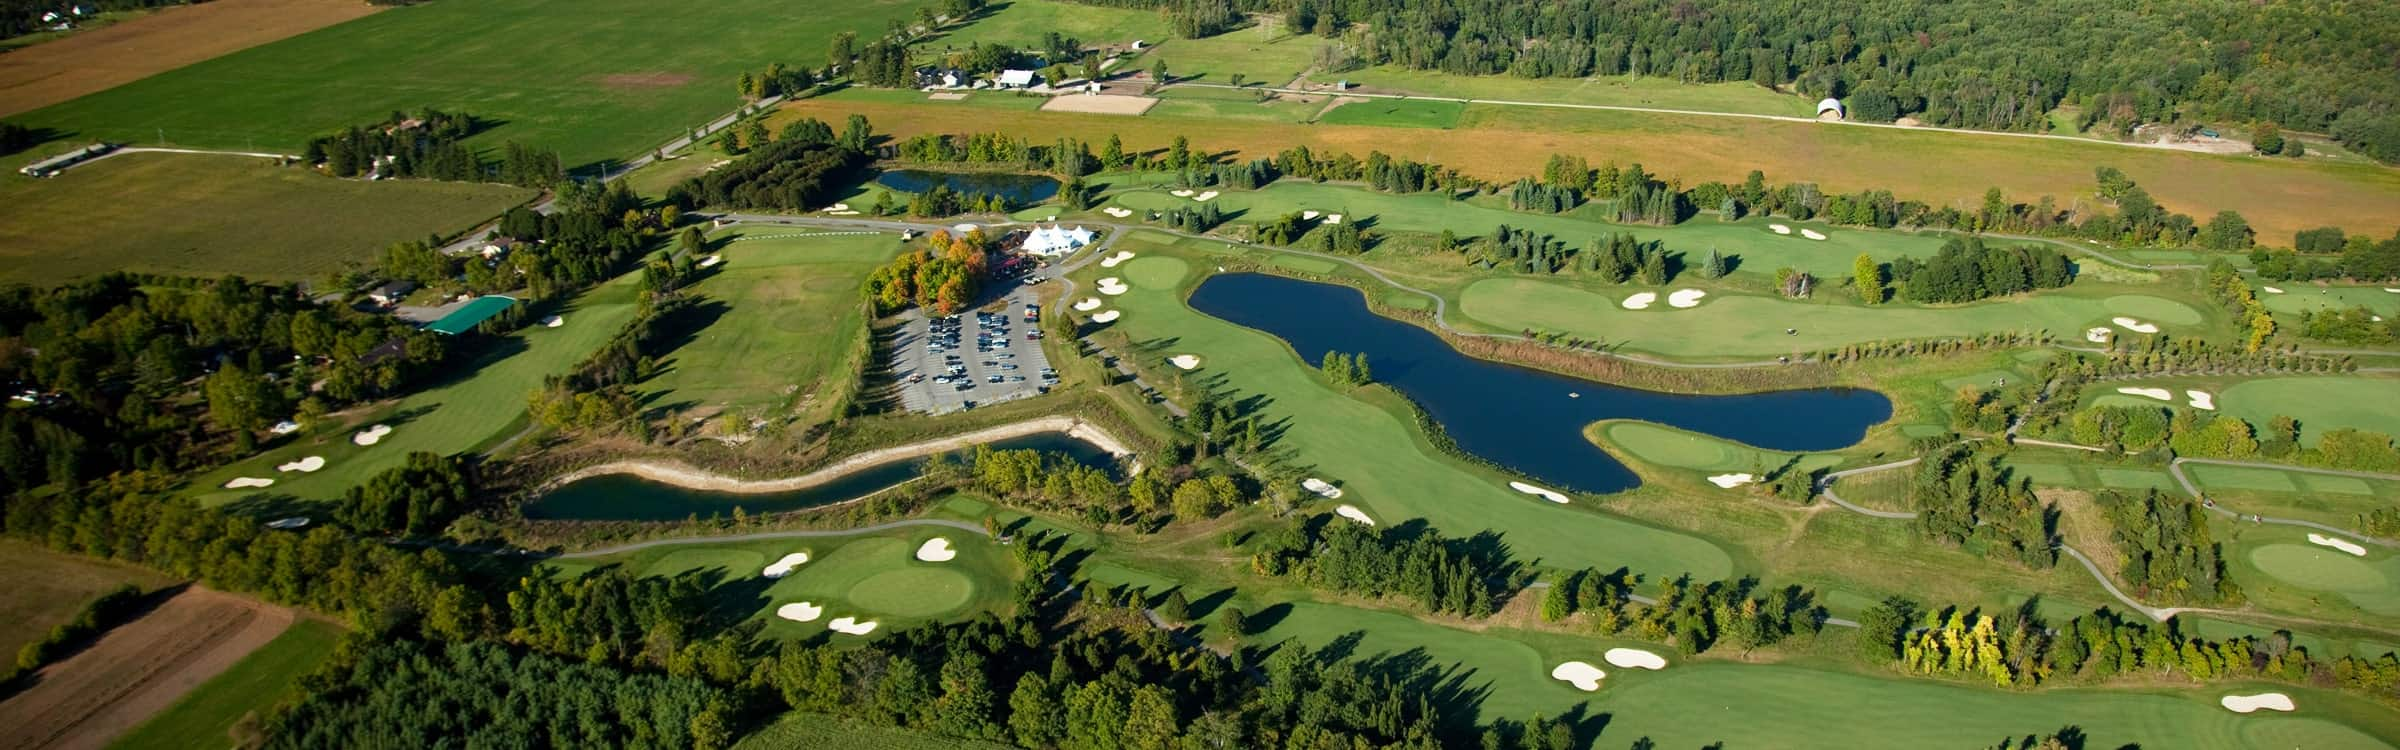 aerial view of dragon's fire golf course in hamilton, ontario